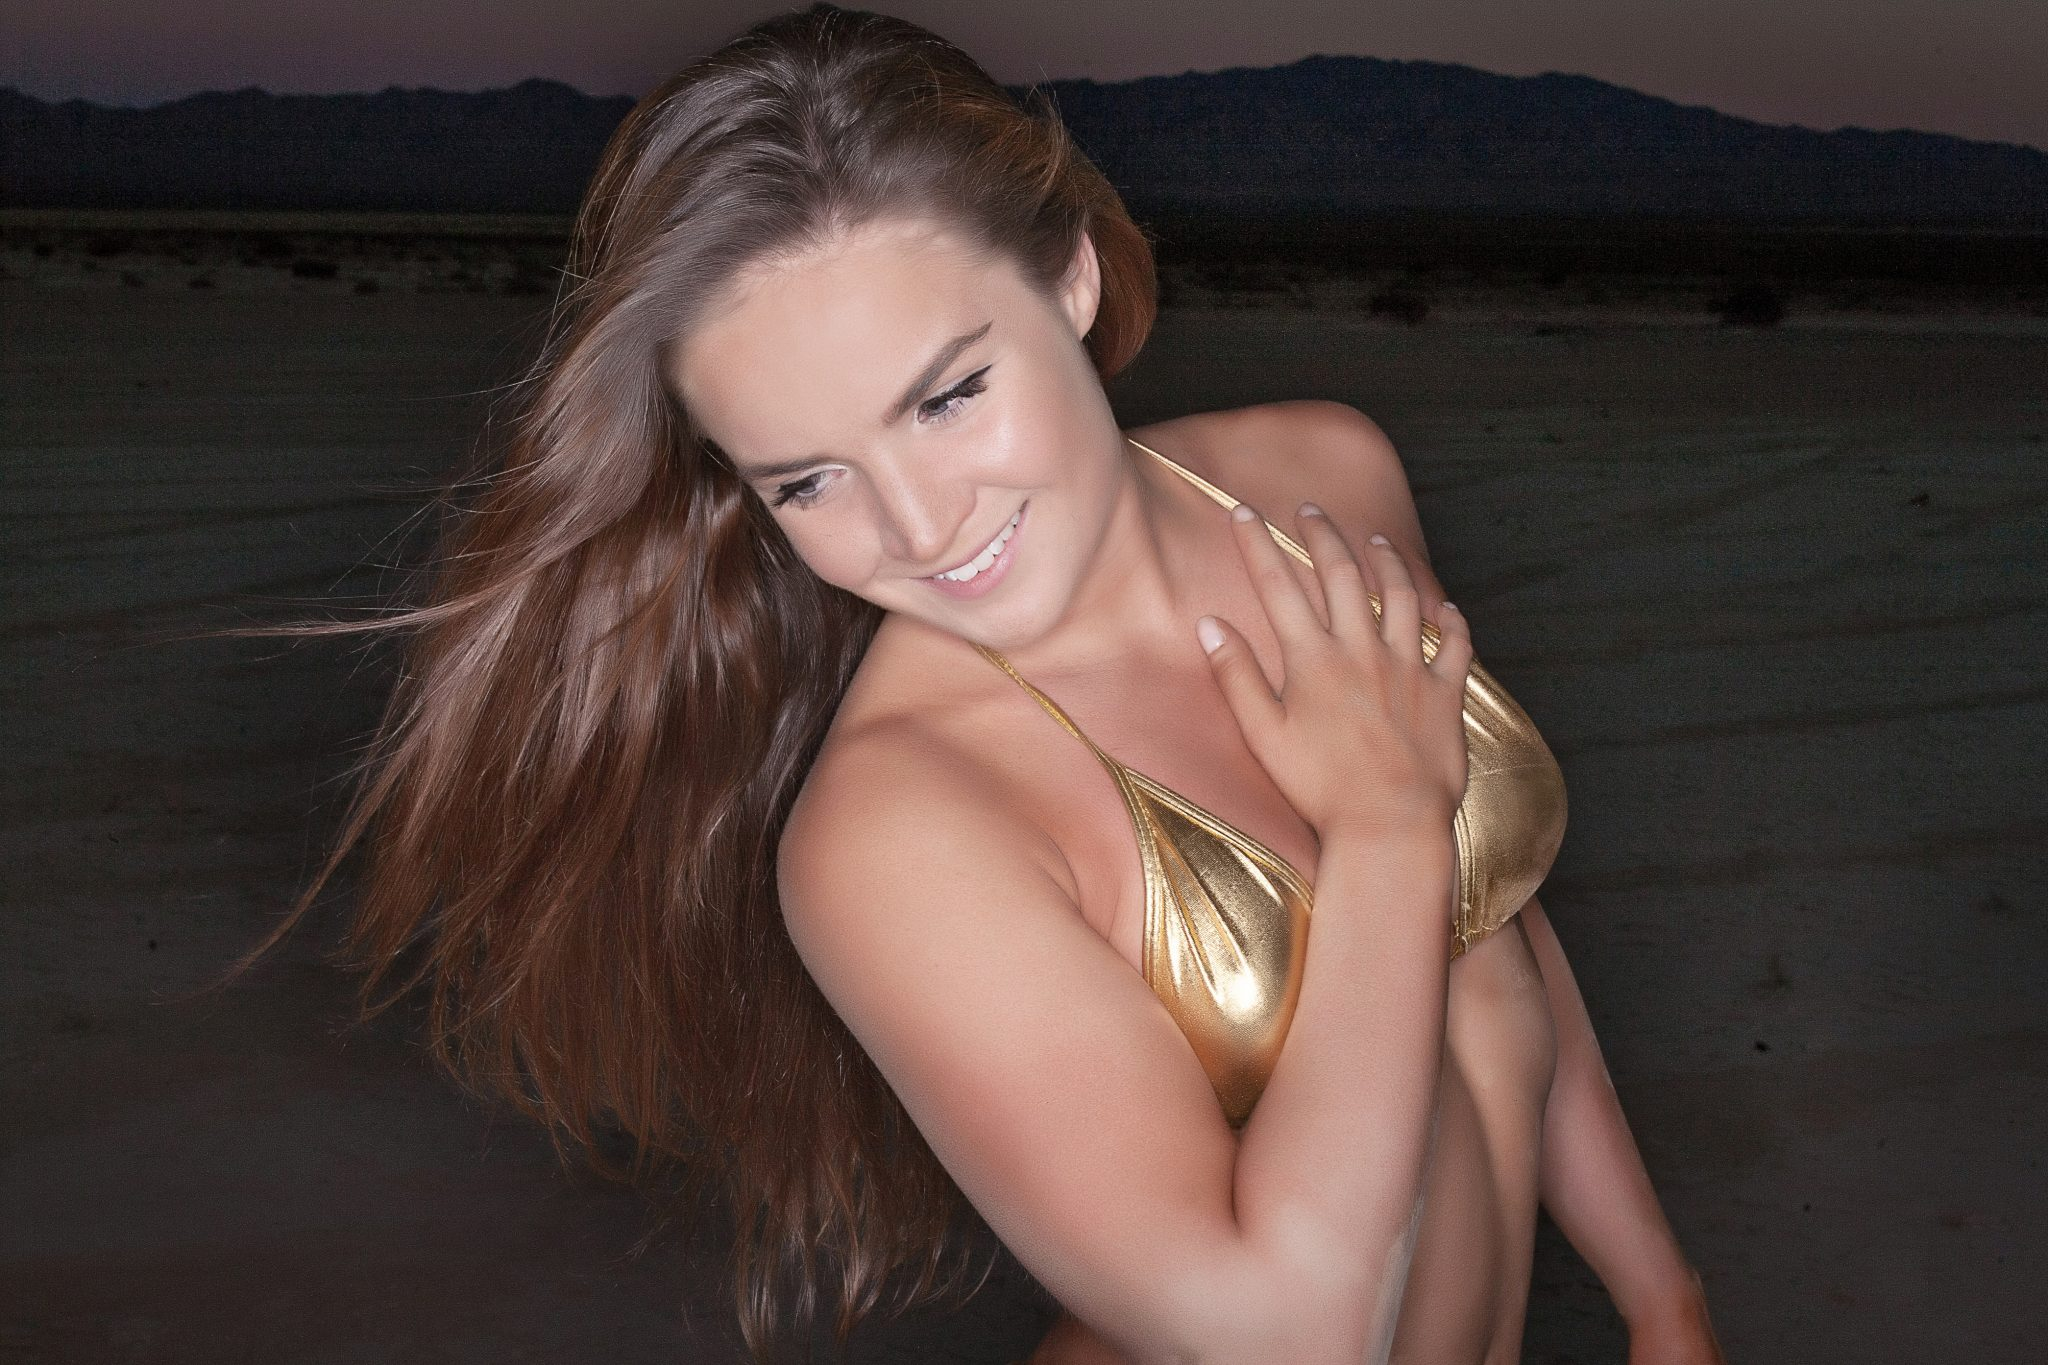 las vegas beauty, fashion, fitness and boudoir photography